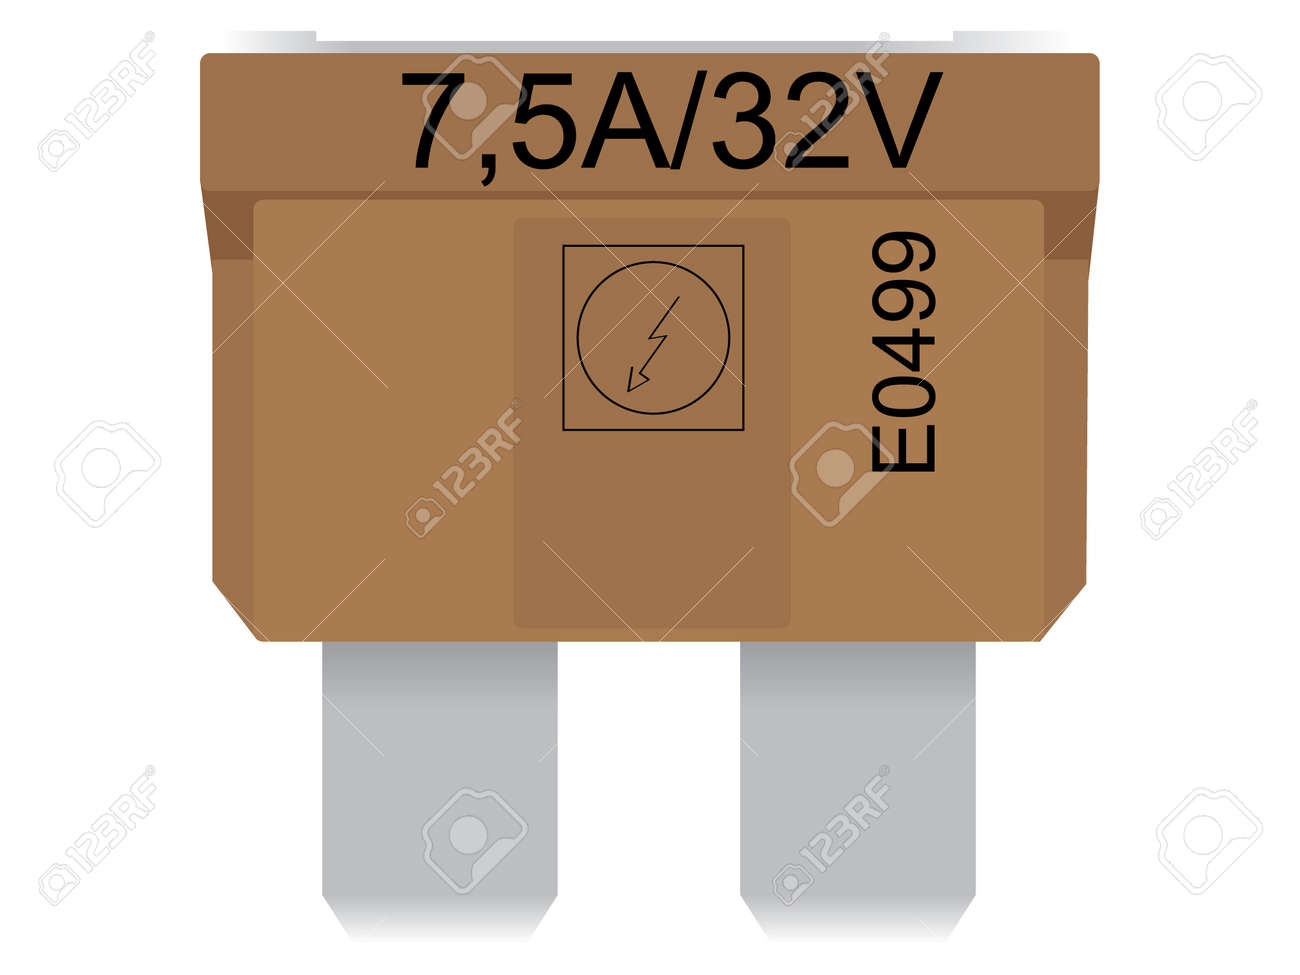 Electrical Fuse Vector Vector Fuse in The Car